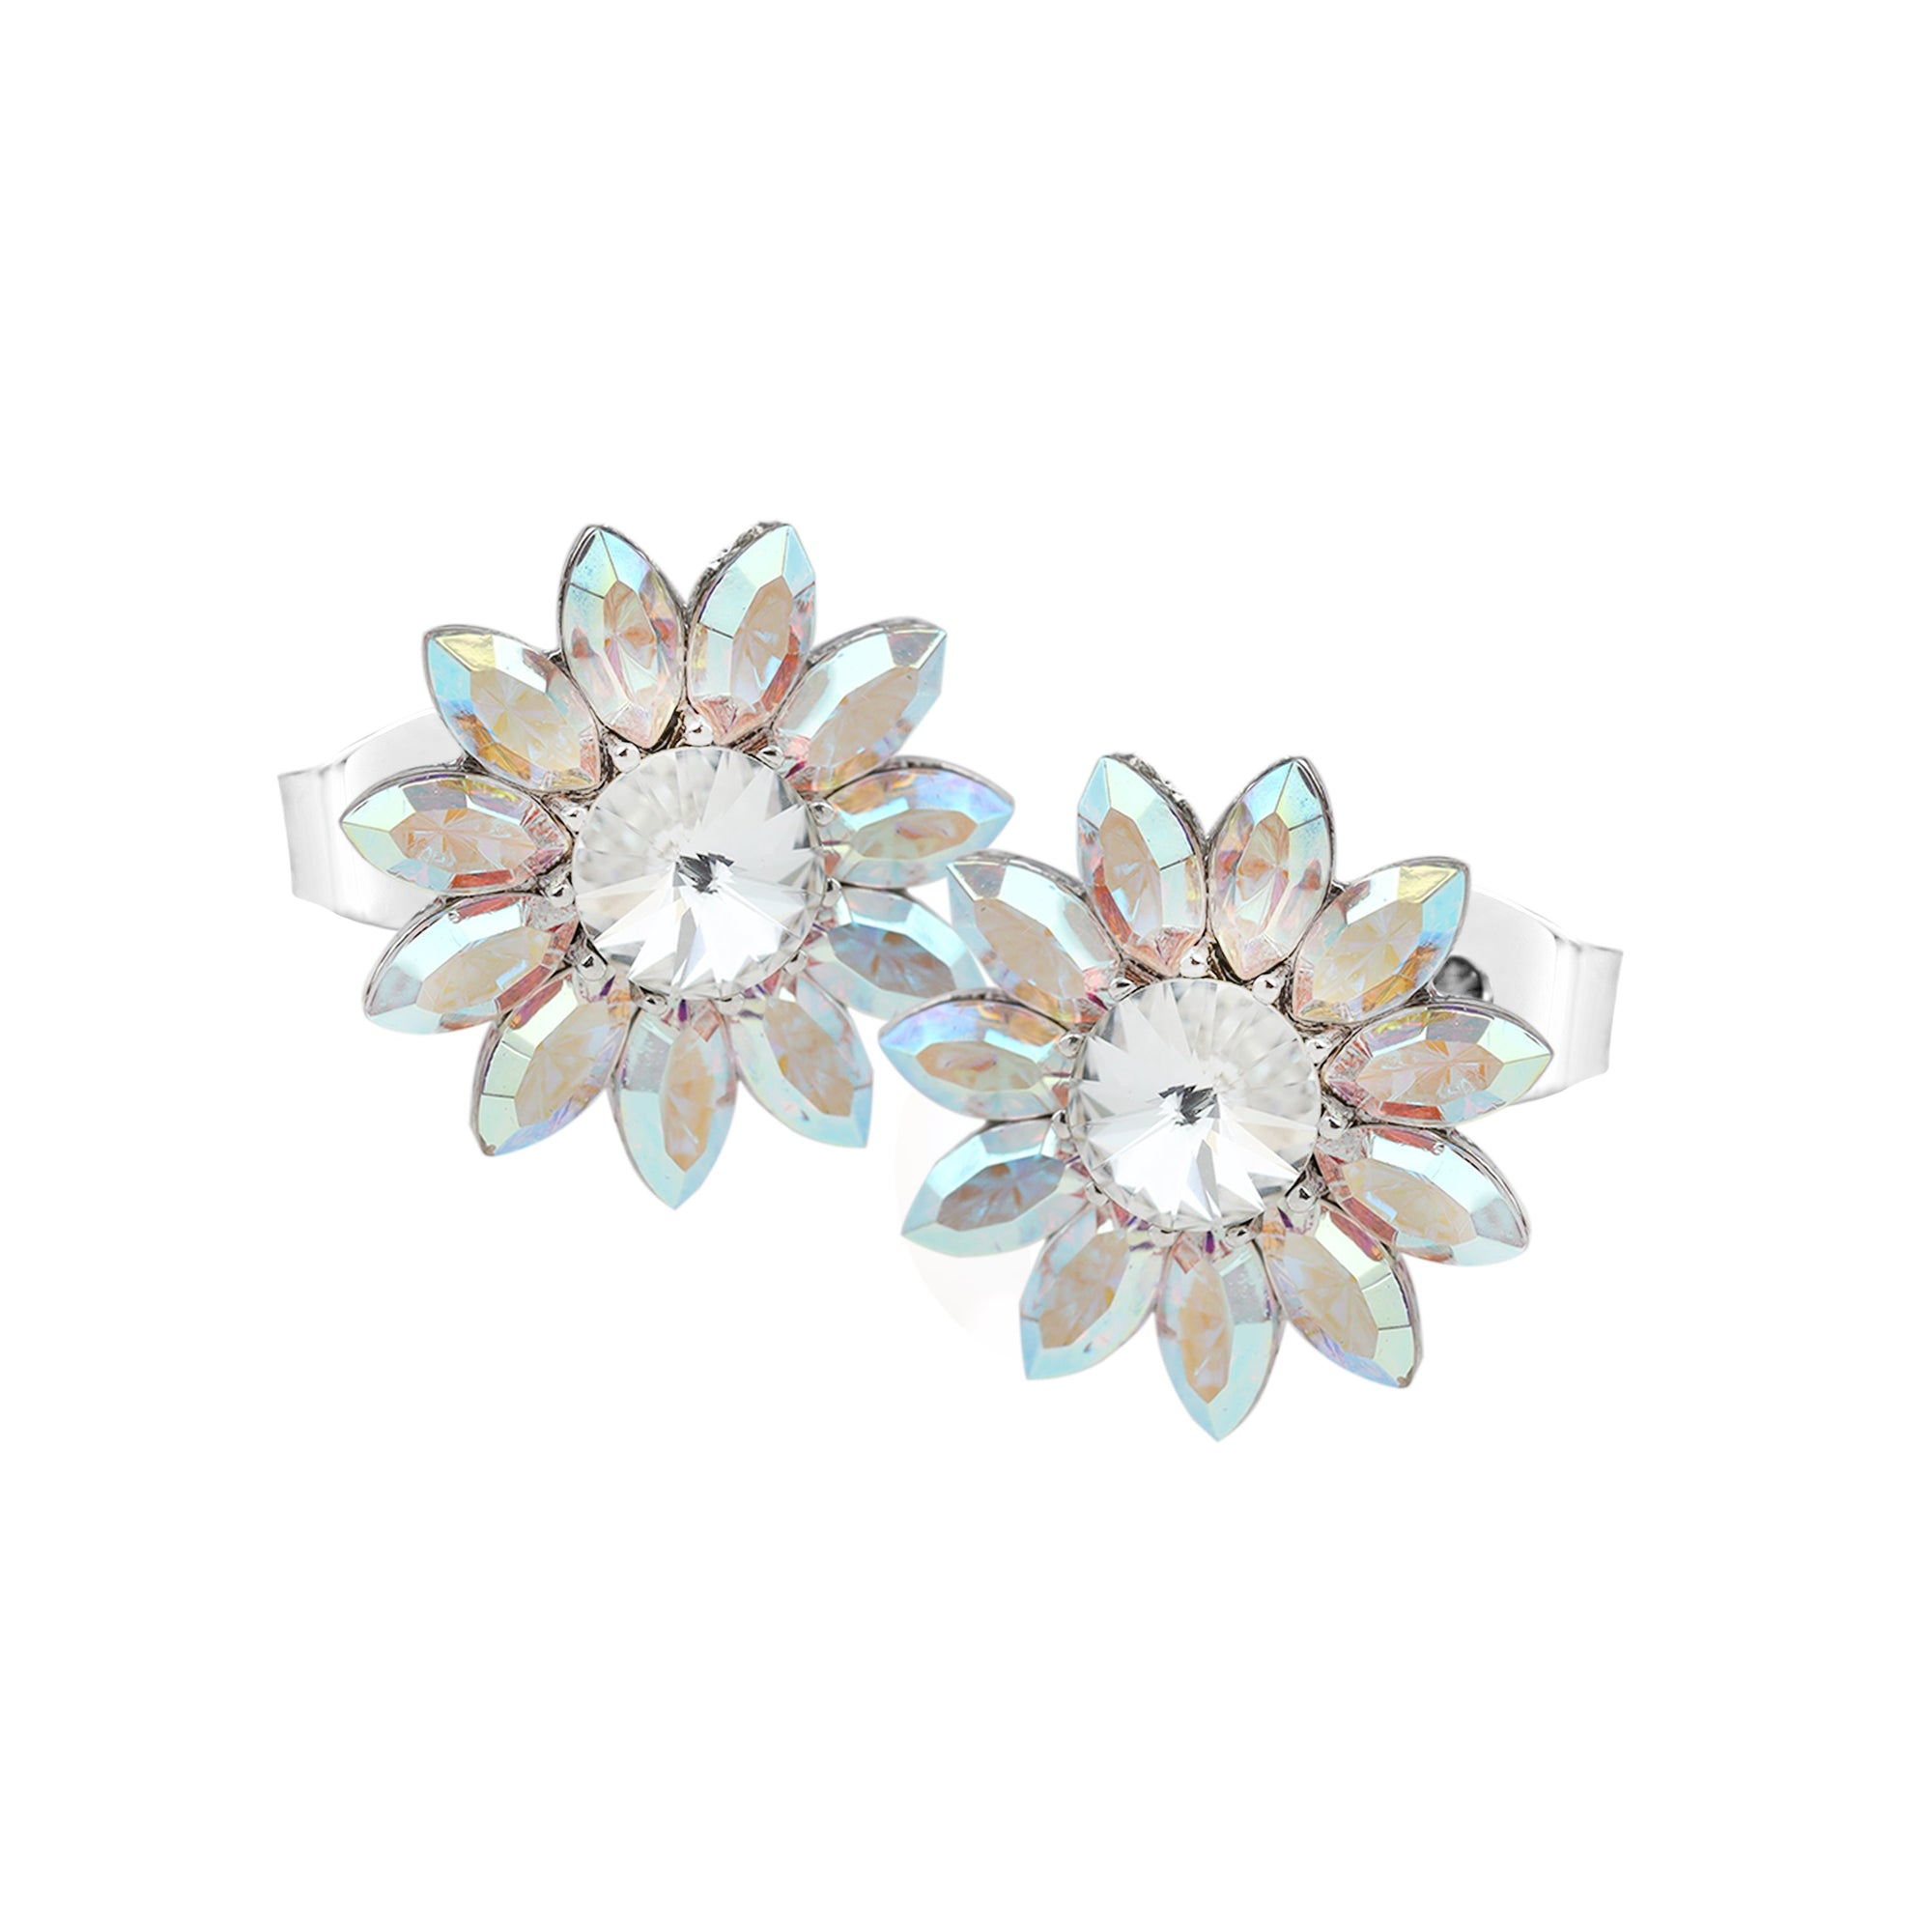 BLOOM NEW BEGINNINGS FLOWER EARRING AURORA BOREALIS